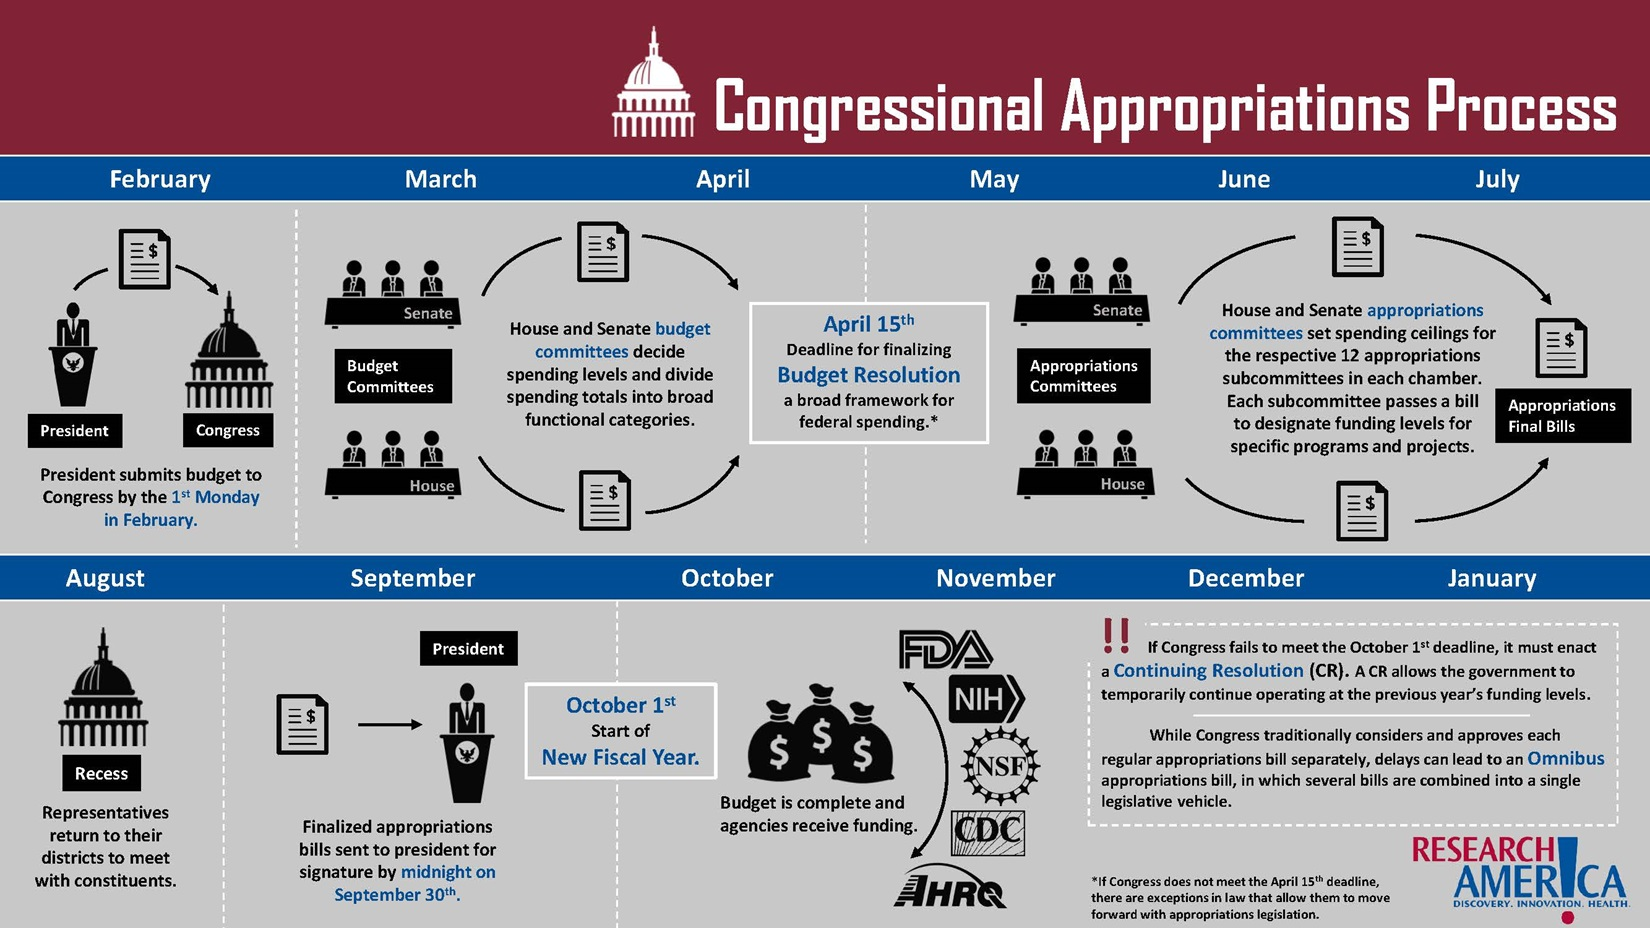 Research!America congressional appropriations process flow chart infographic